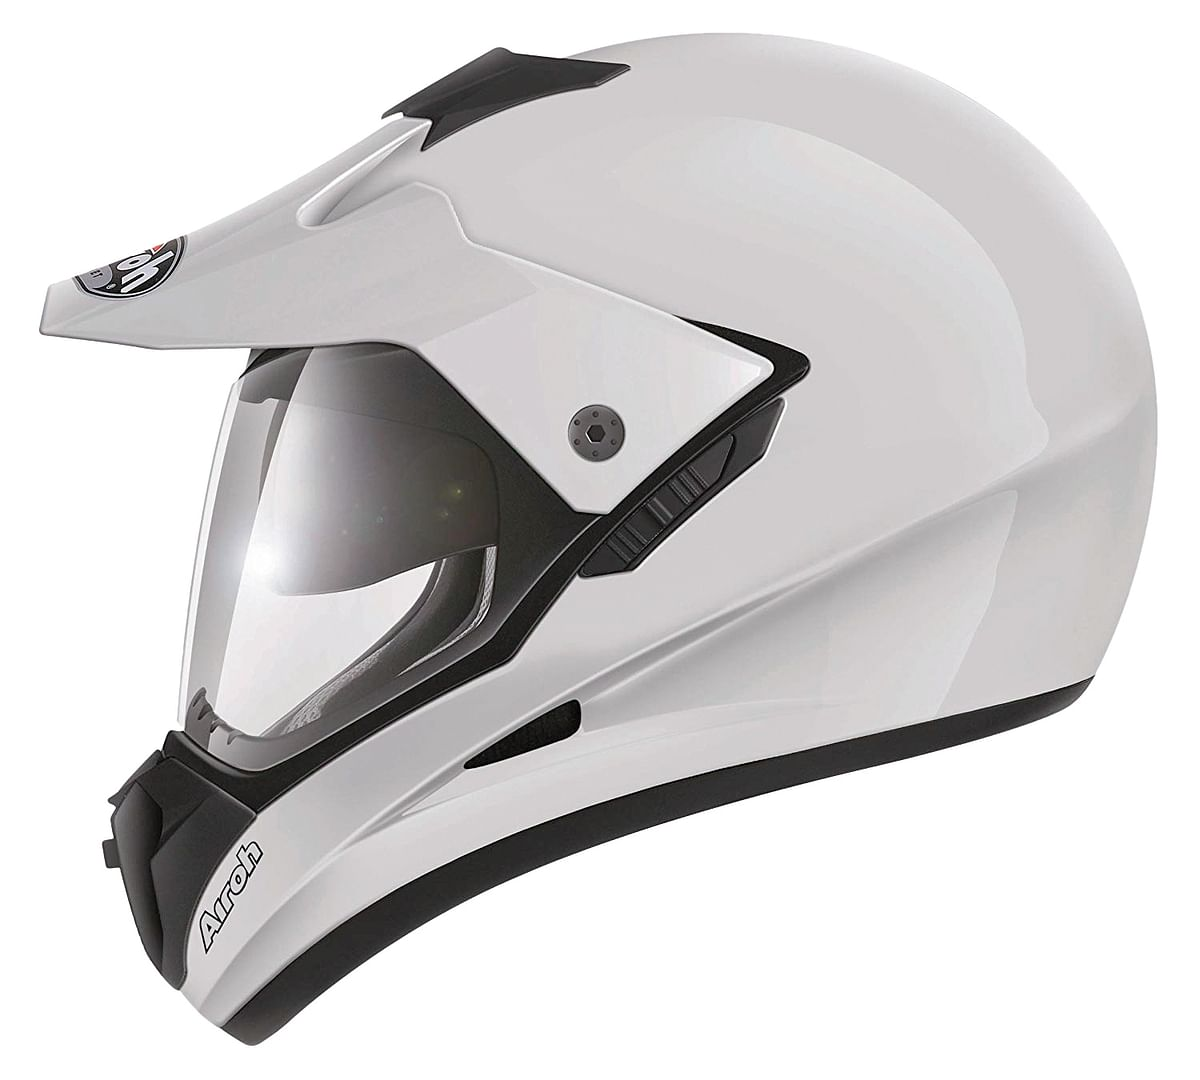 Riding essentials: Airoh S5 helmet